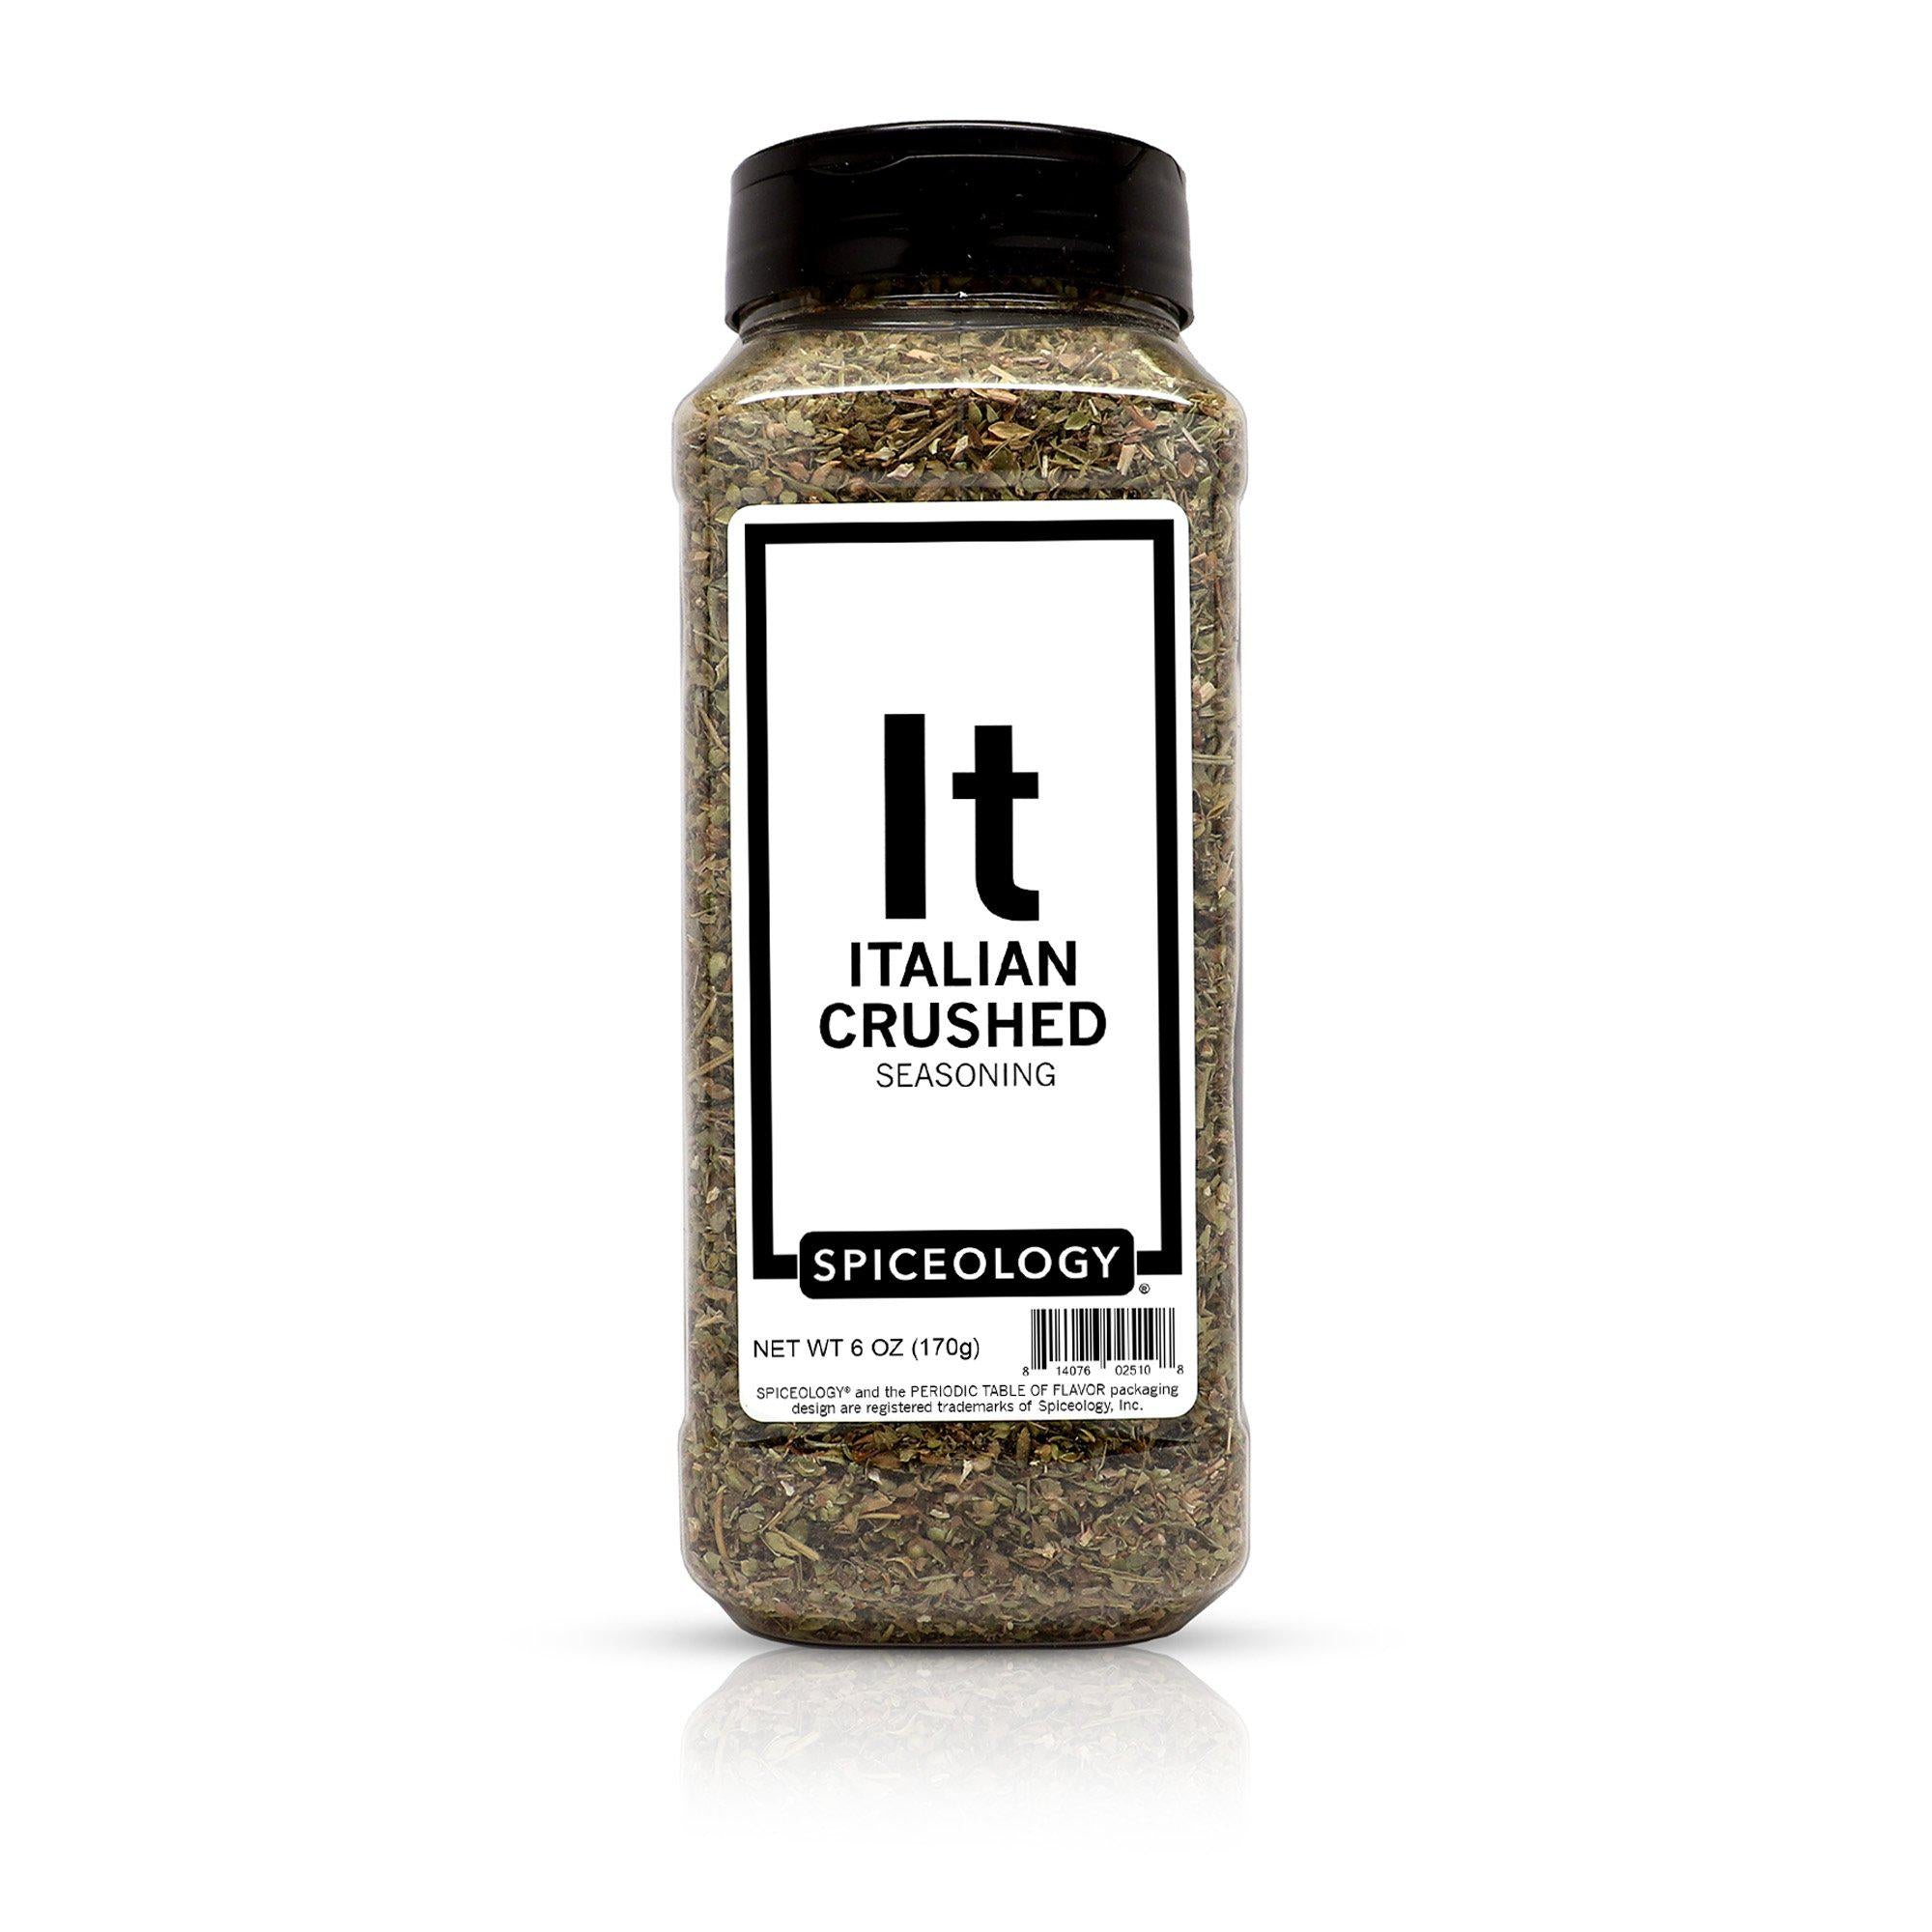 Italian Crushed Seasoning